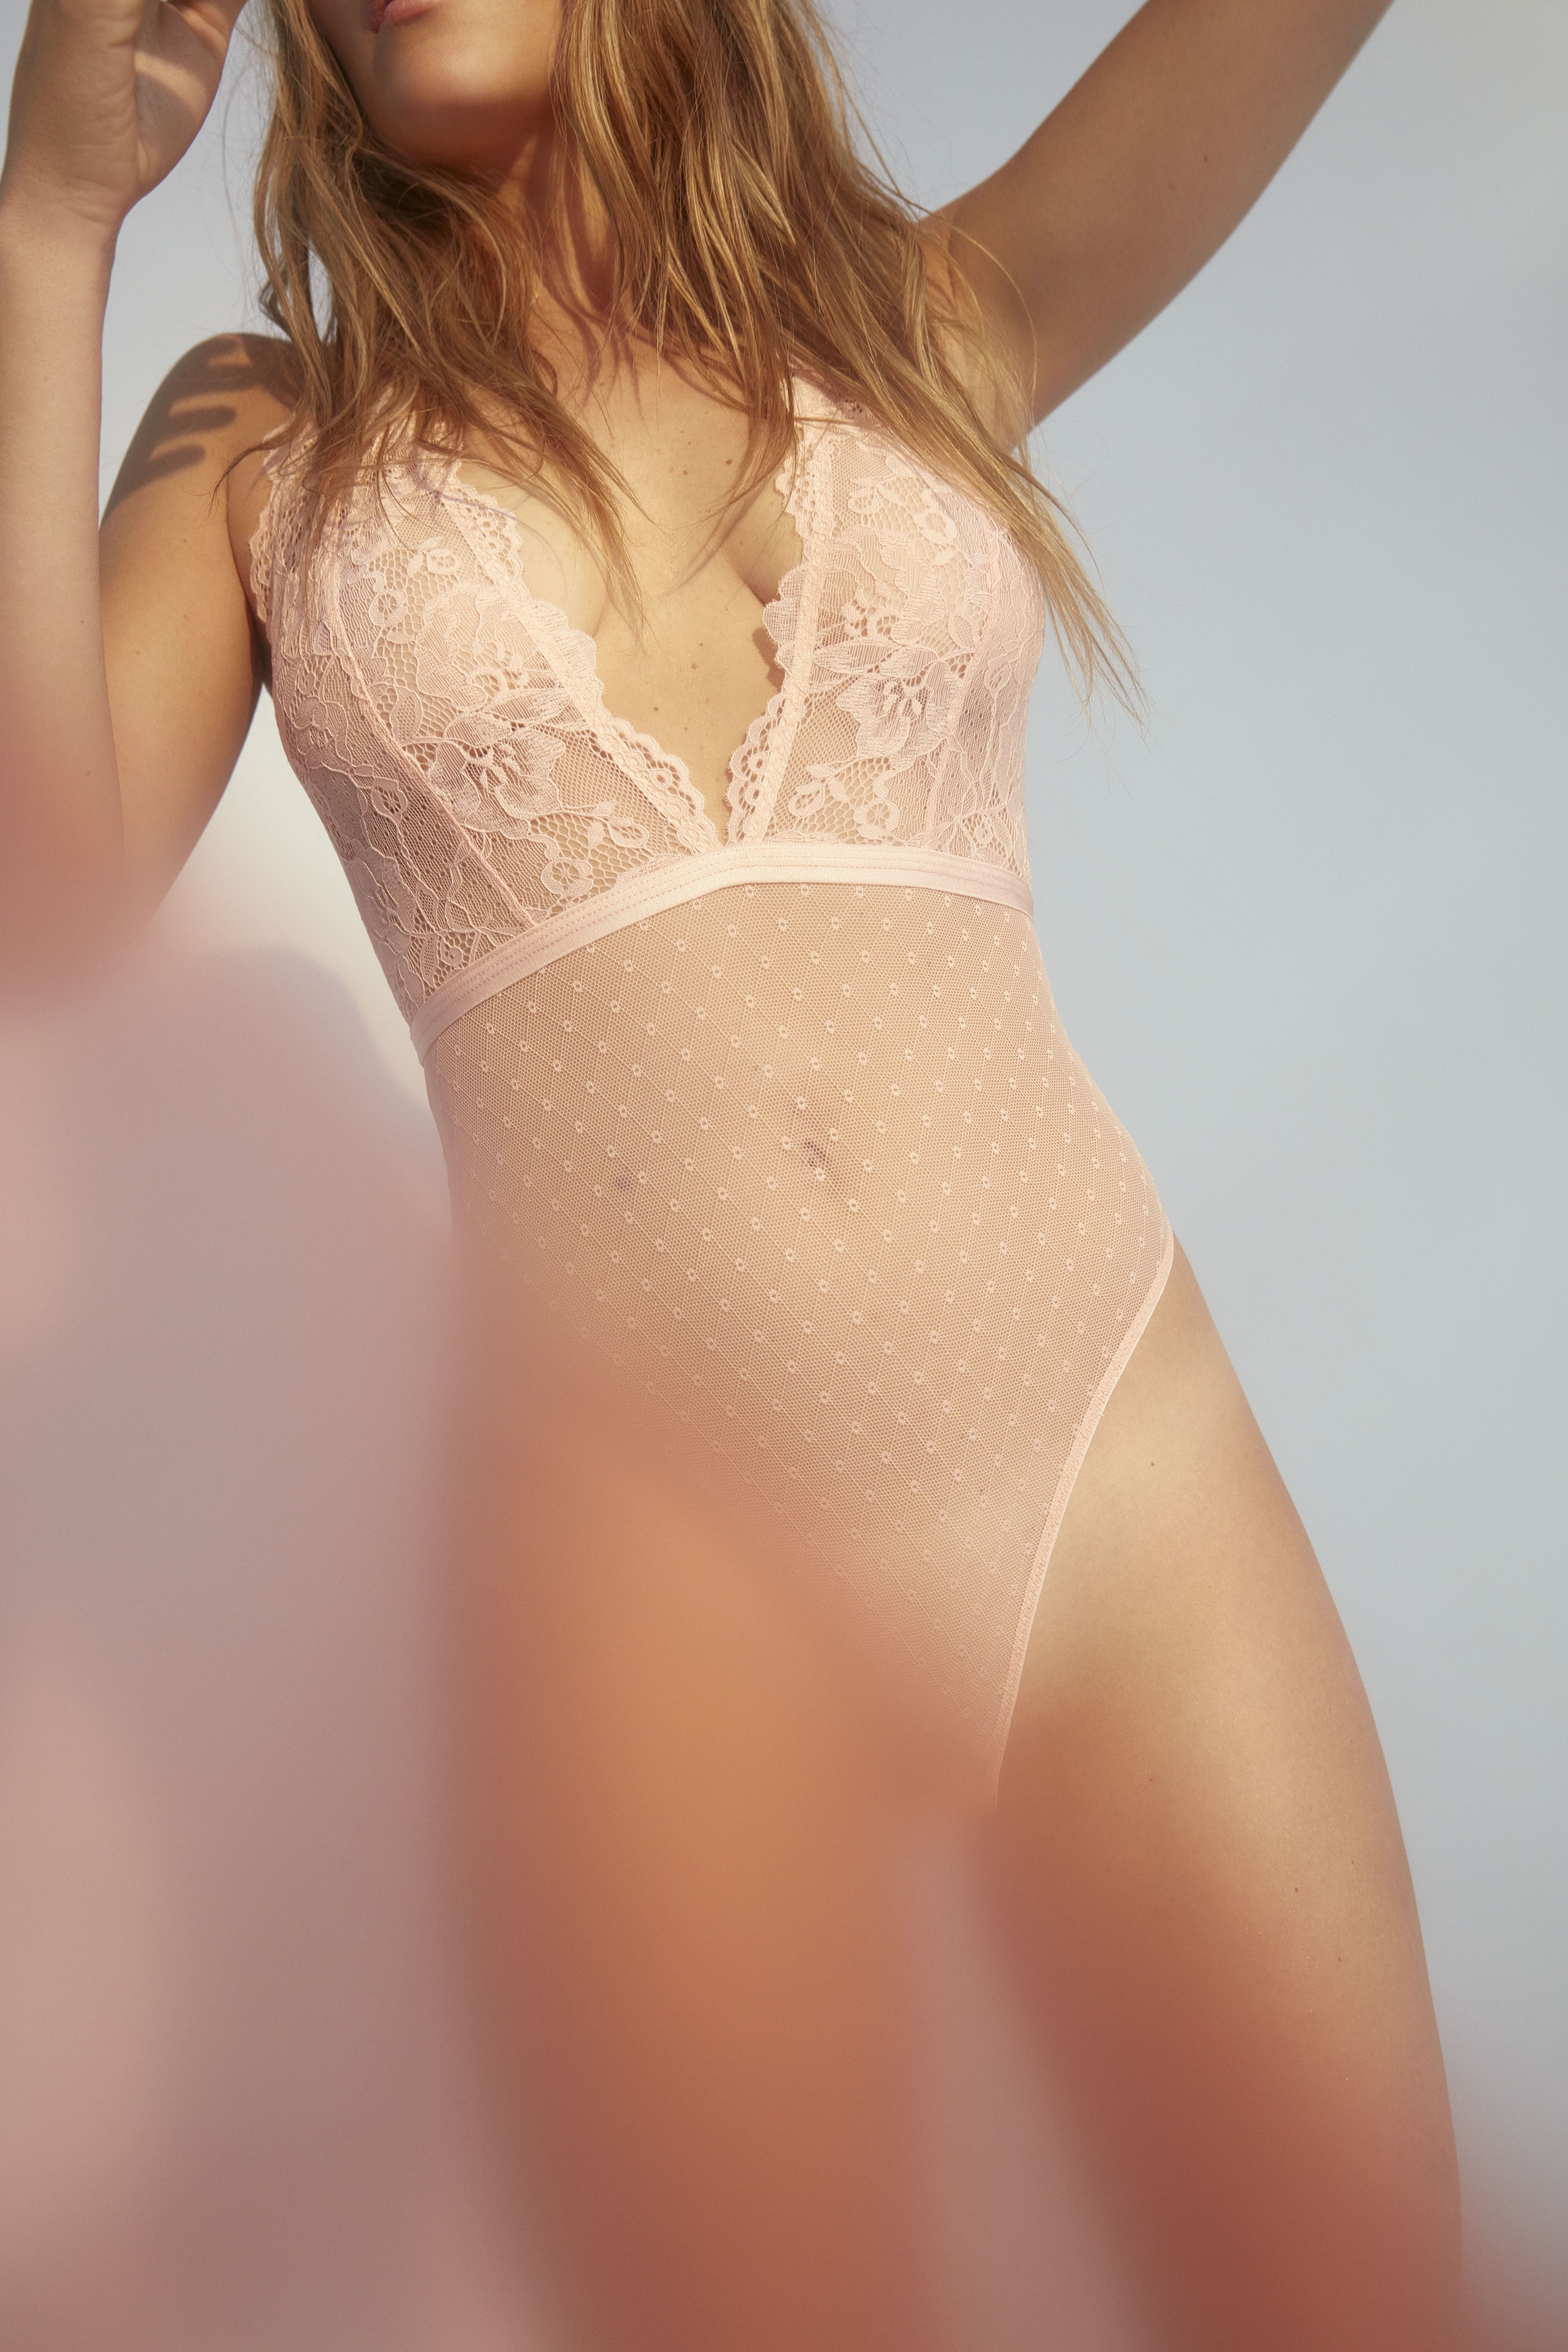 Blush lingerie see through Pin On The V Word